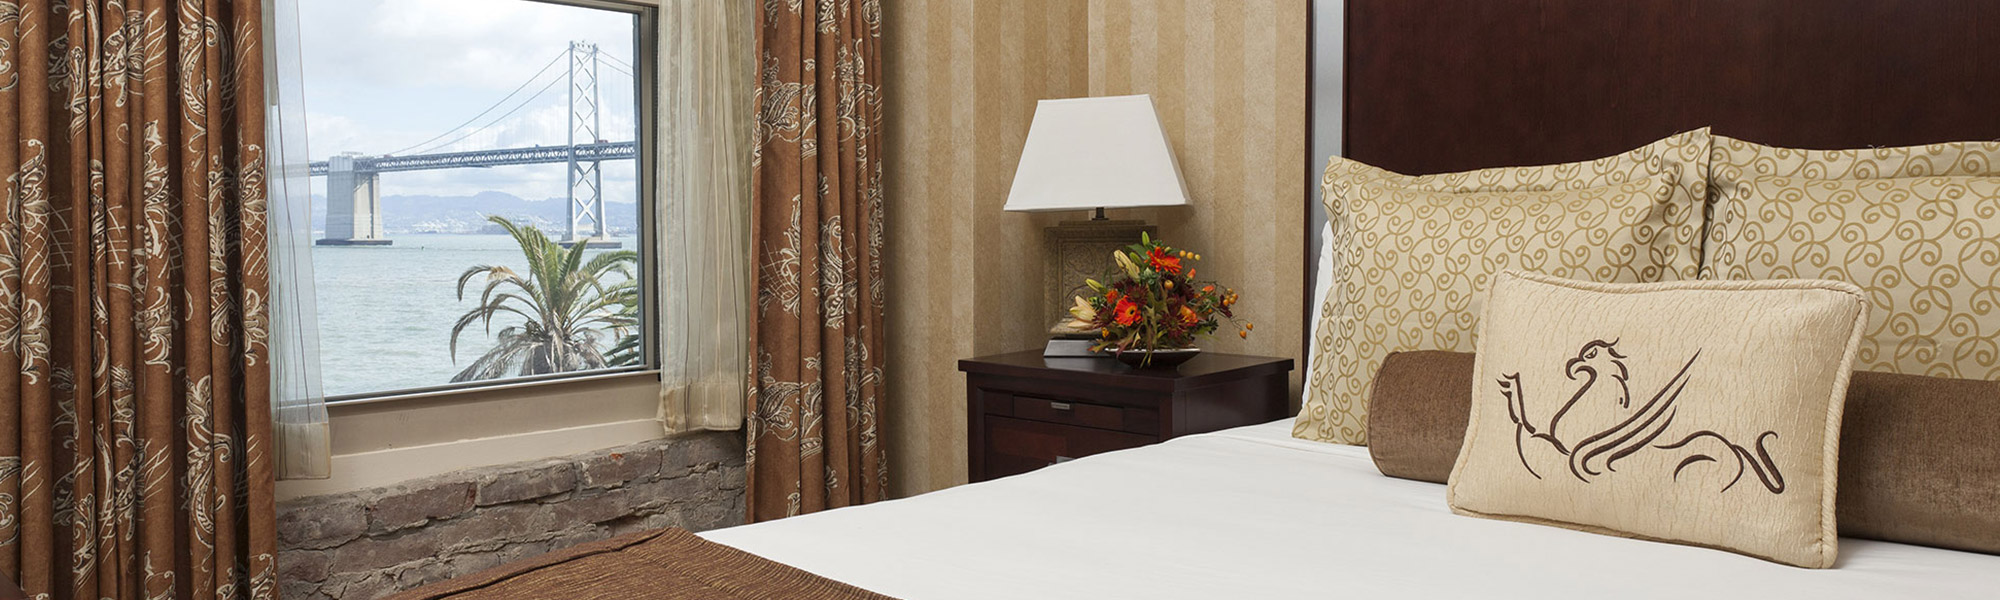 Packages availiable at Hotel Griffon, San Francisco